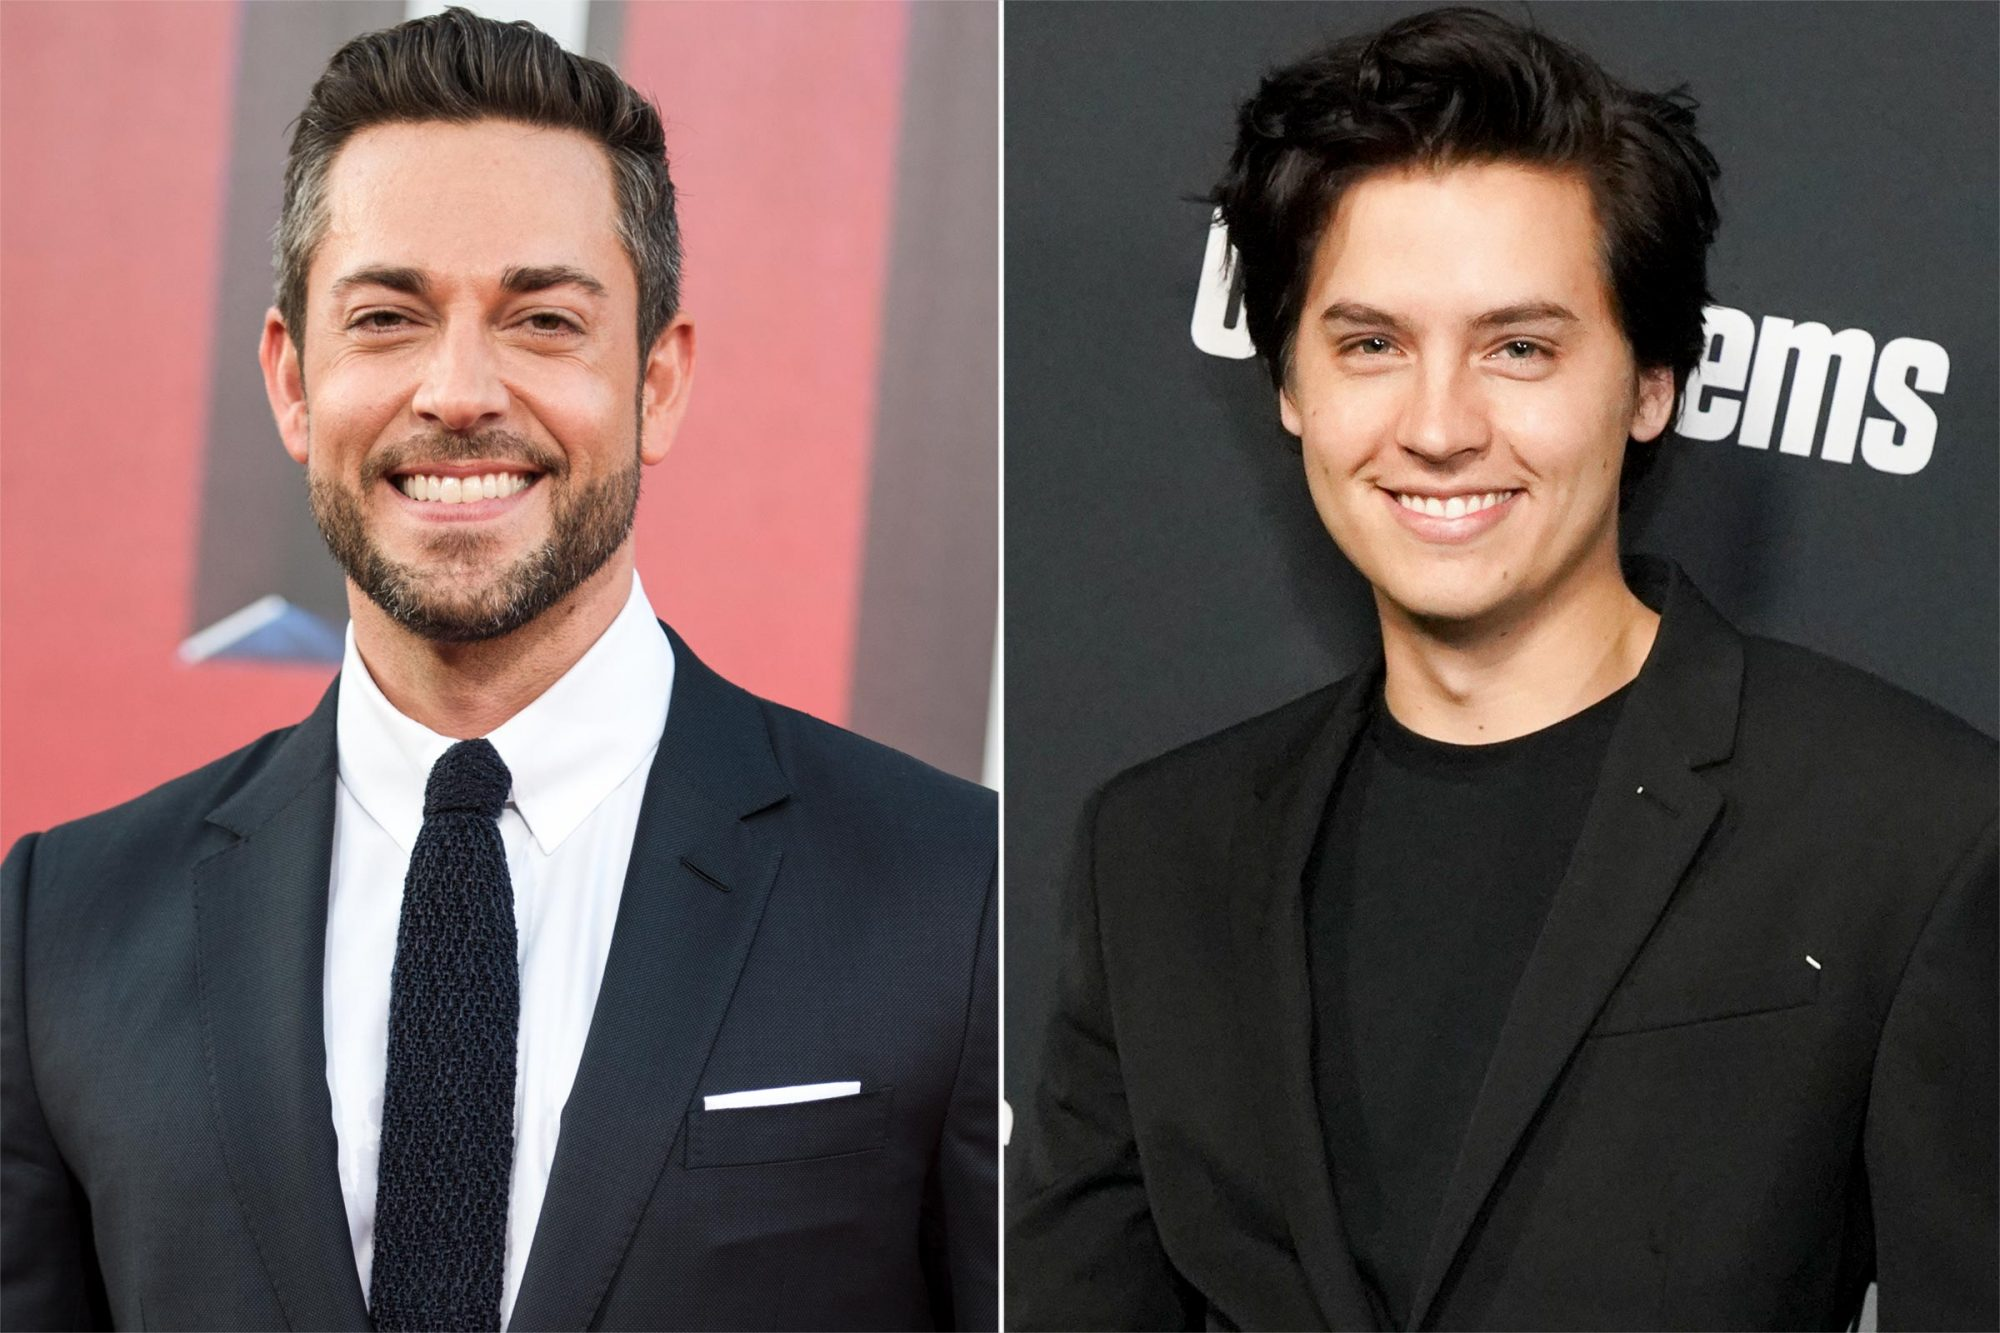 Zachary Levi / Cole Sprouse